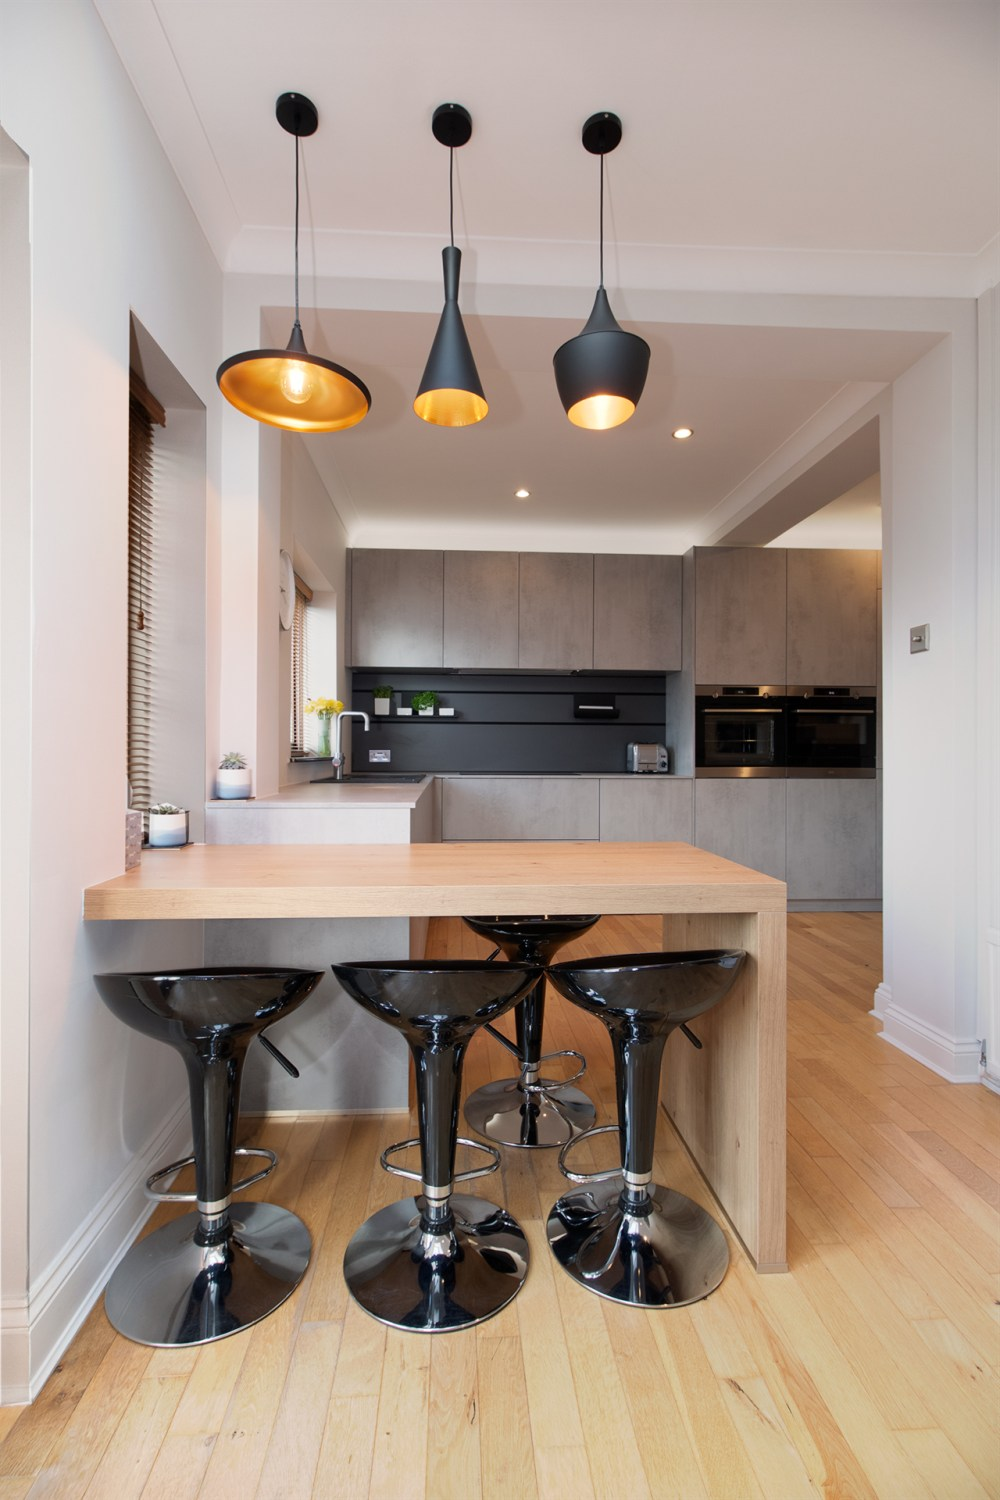 Schuller Elba Kitchen Project in Barry - 01